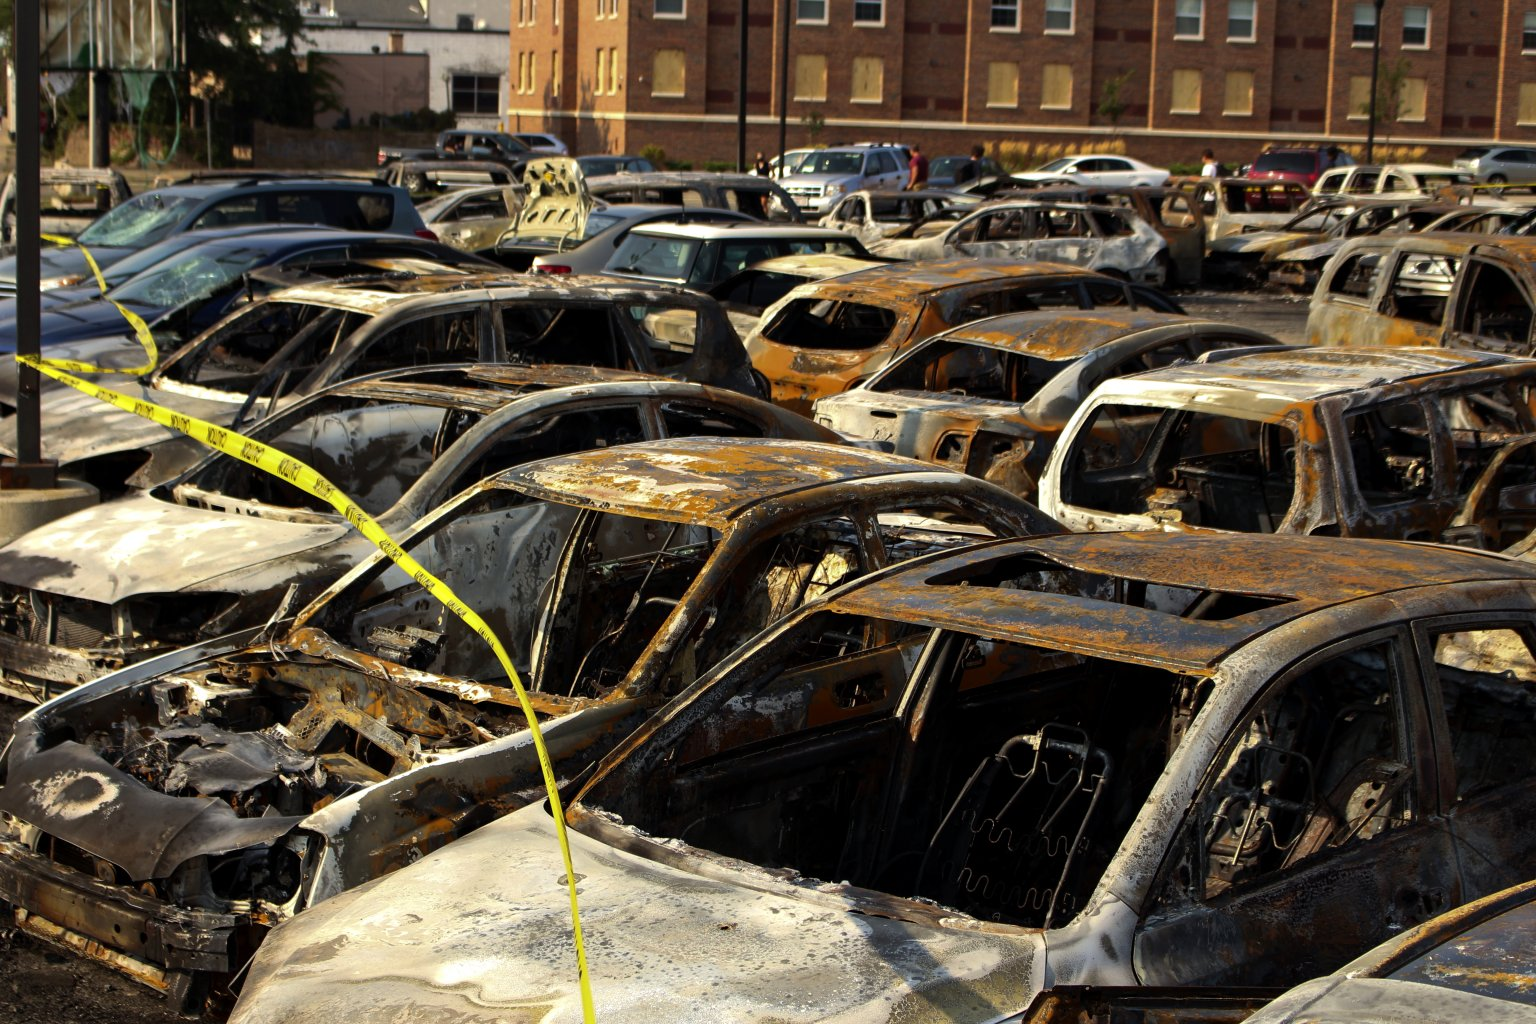 Burned out vehicles in Kenosha. Photo by Henry Redman/Wisconsin Examiner.